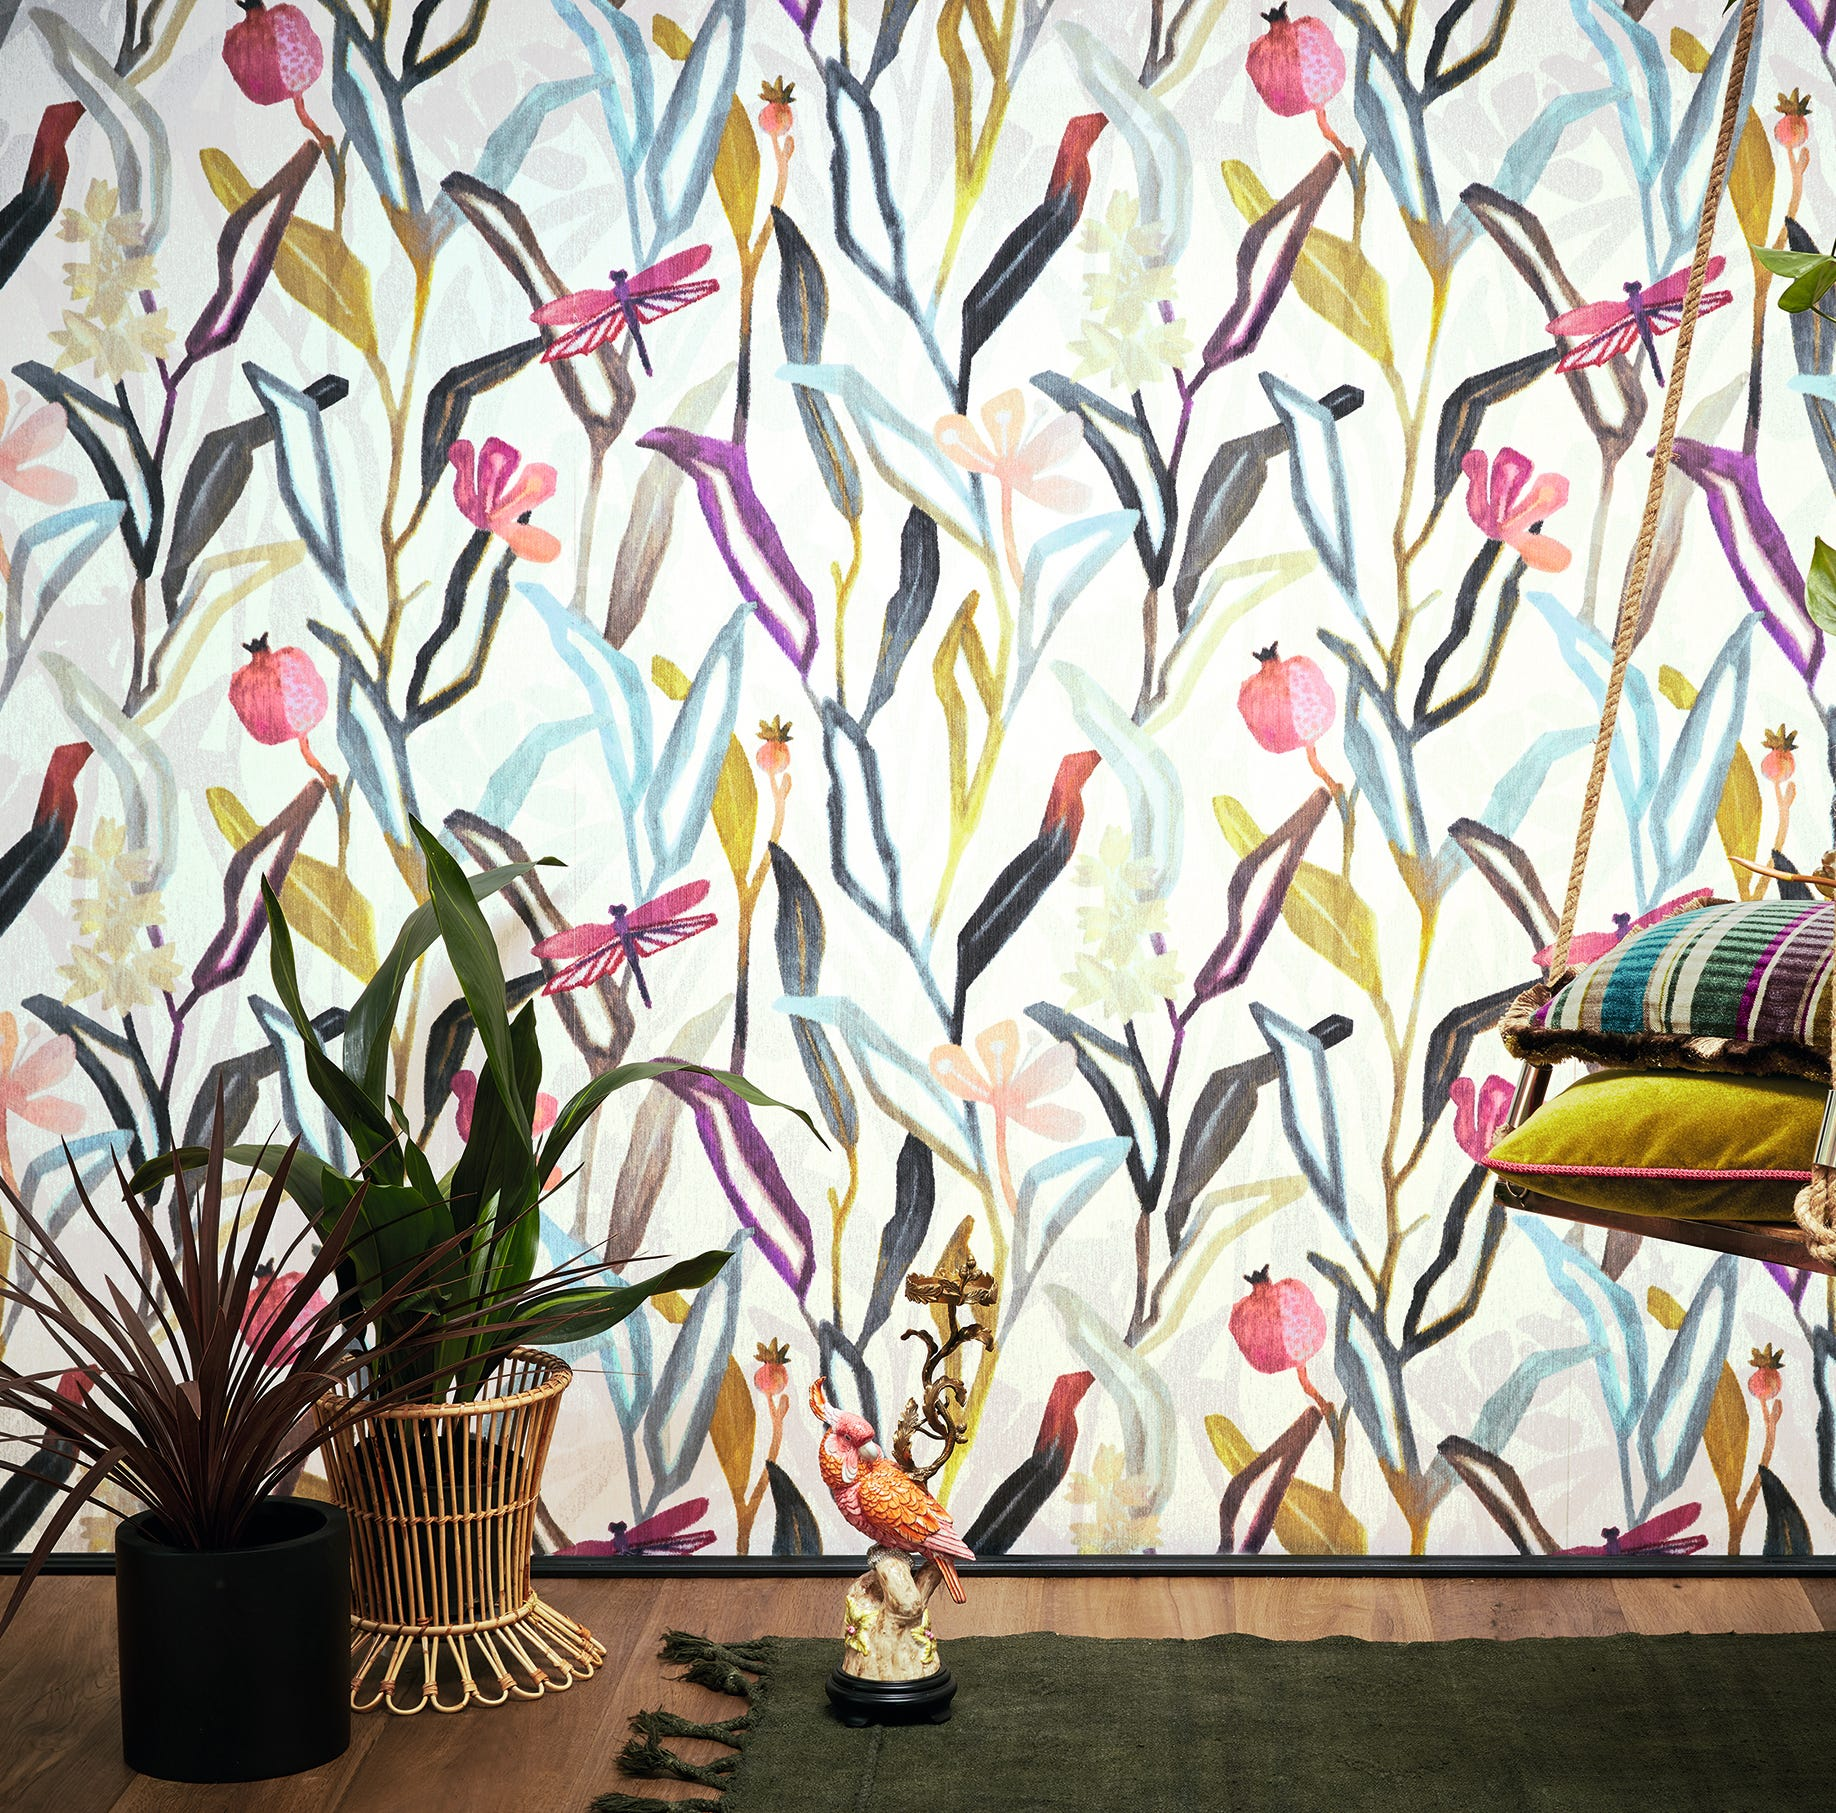 Revolutionary wallcovering designs dazzle at trade fairs